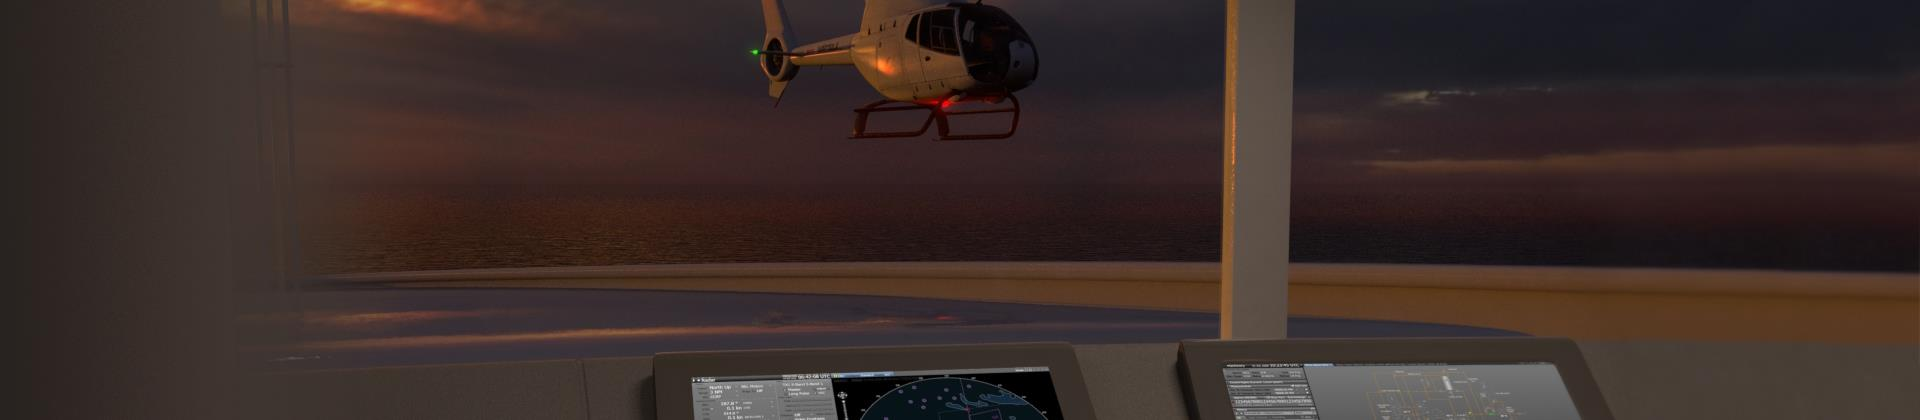 Helicopter-Guidance-banner